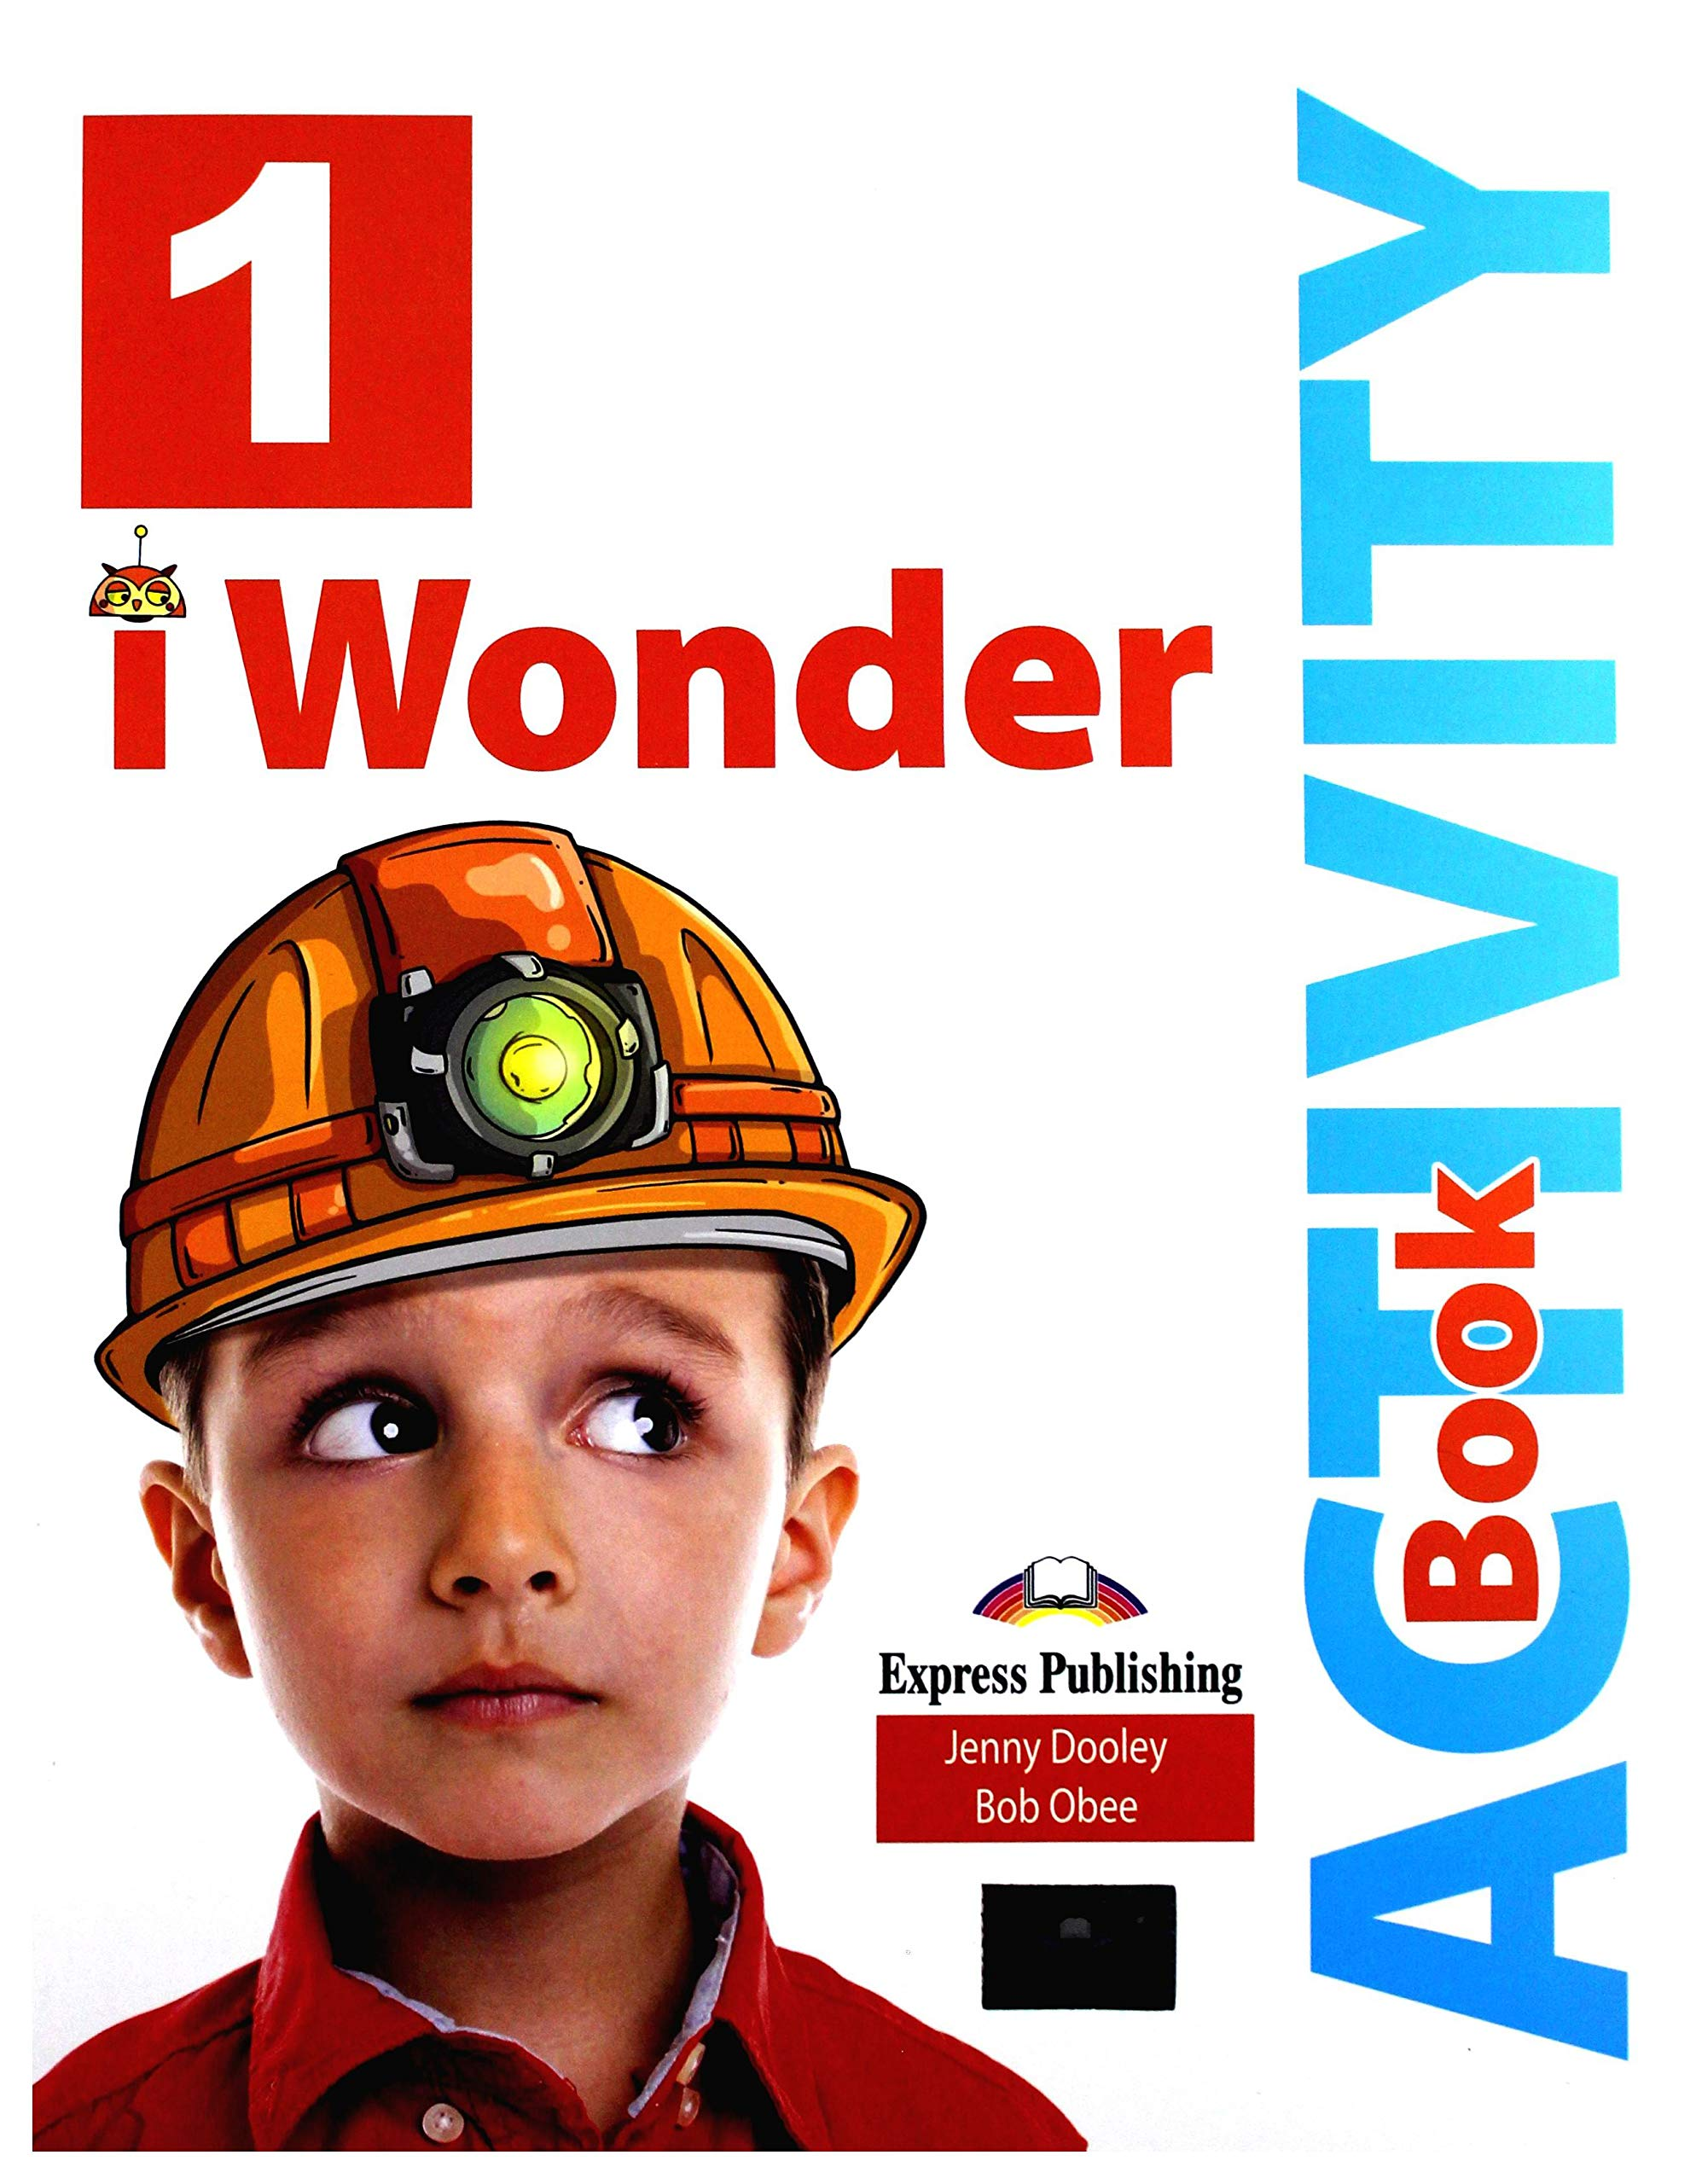 iWonder is a six-level series that teaches English alongside other school subjects and brings all the wonderful elements of the real world into the language classroom. The course has been designed to fully engage and motivate young learners and to ensure that they develop a love of learning that is never-ending! Key Features: - Cross-curricular Language Learning extending and enriching the pupils' language experience. - Dialogues with engaging characters that are stimulating and enjoyable. - Integration of all four language skills. - Focus on 21st Century Skills (critical thinking, communication, collaboration and creativity). - Catchy songs making learning fun and memorable. - Functional speaking activities providing meaningful language in everyday sistuations. - Development of Social and Emotional Skills (role play, craftwork, games, songs, stories and values). - Circle-time activities providing low stress yet highly effective learning opportunities. - Craftwork sections that boost leaners' creativity. - Cross-curricular projects that help learners reflect on and consolidate what they have learnt in a creative way. - Activities that enable pupils to develop their public speaking skills (Show and Tell). - Wonder Tales sections with stories from around the world that educate and teach values. - A World of Wonder sections that embrace diversiry and cultivate young people's natural curiosity. - Winning combination of print and digital resources. - Plenty of extra resources including authentic documentary-style videos and video animations, CD-ROM, ieBook, IWB and a unique Digi Platform.